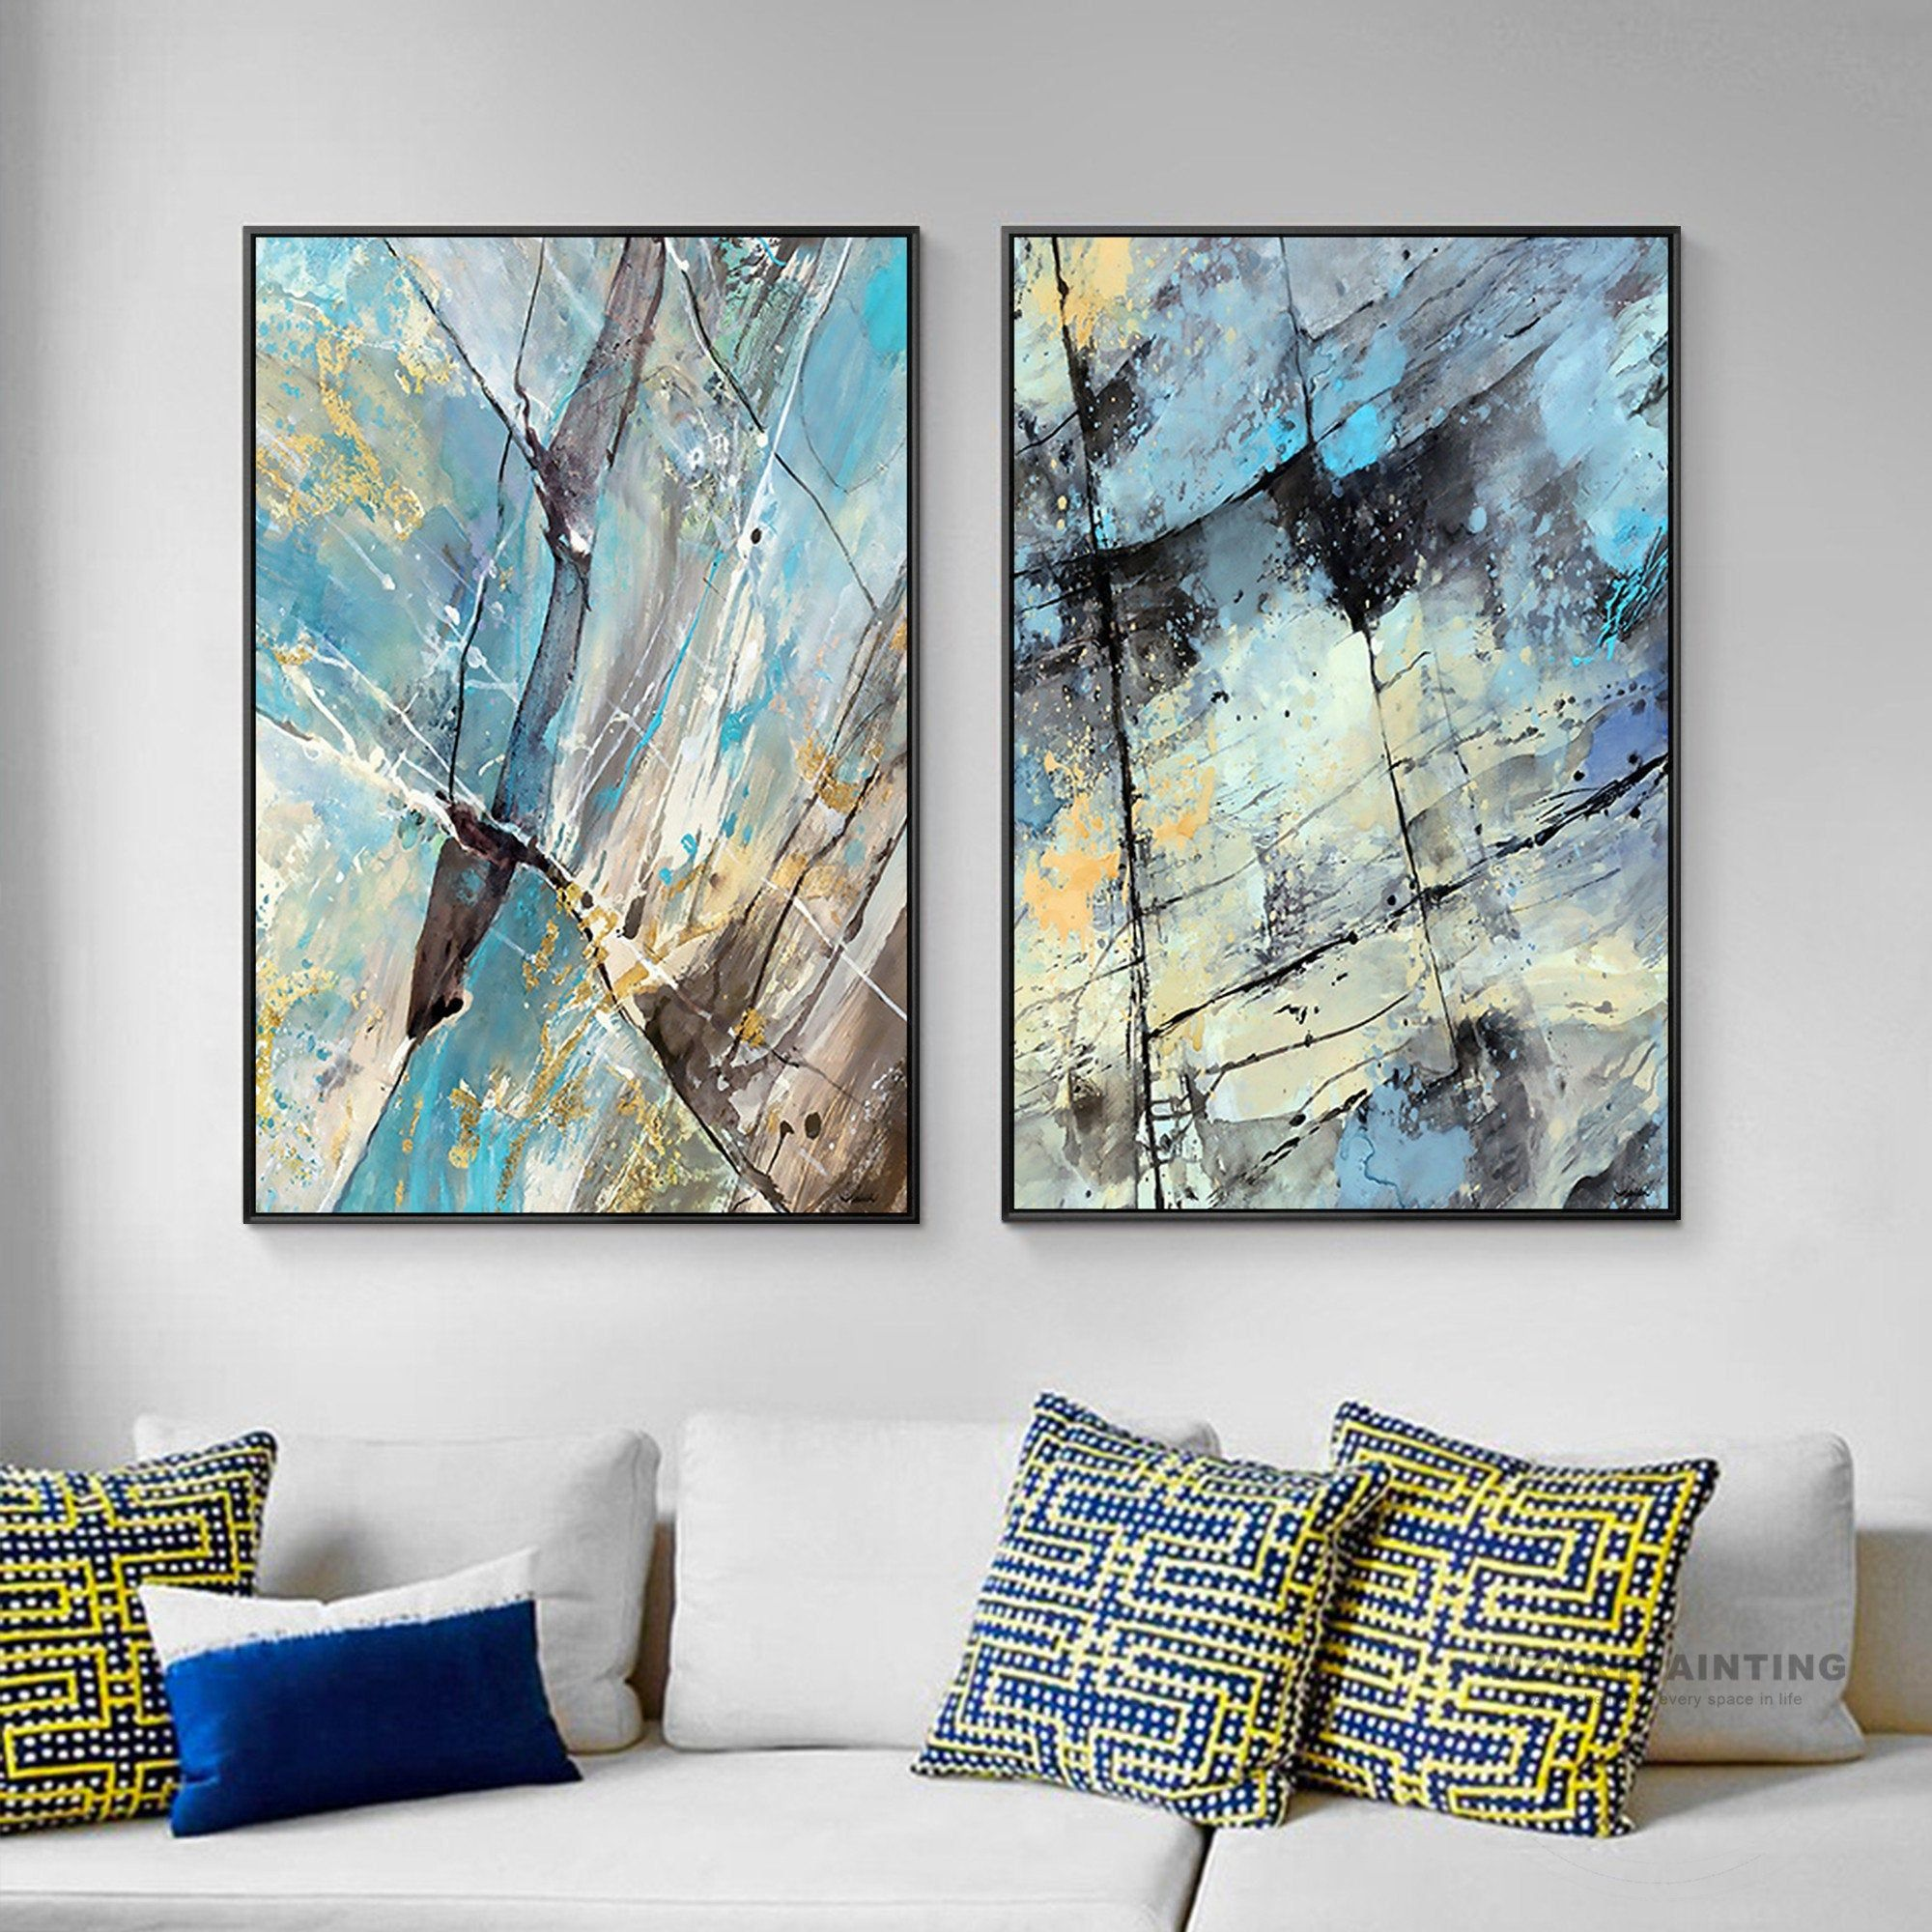 Framed Wall Art Set Of 2 Prints Abstract Navy Blue Black Print Painting Wall Art Pictures On Canvas Large Wall Wall Art Pictures Framed Wall Art Sets Abstract